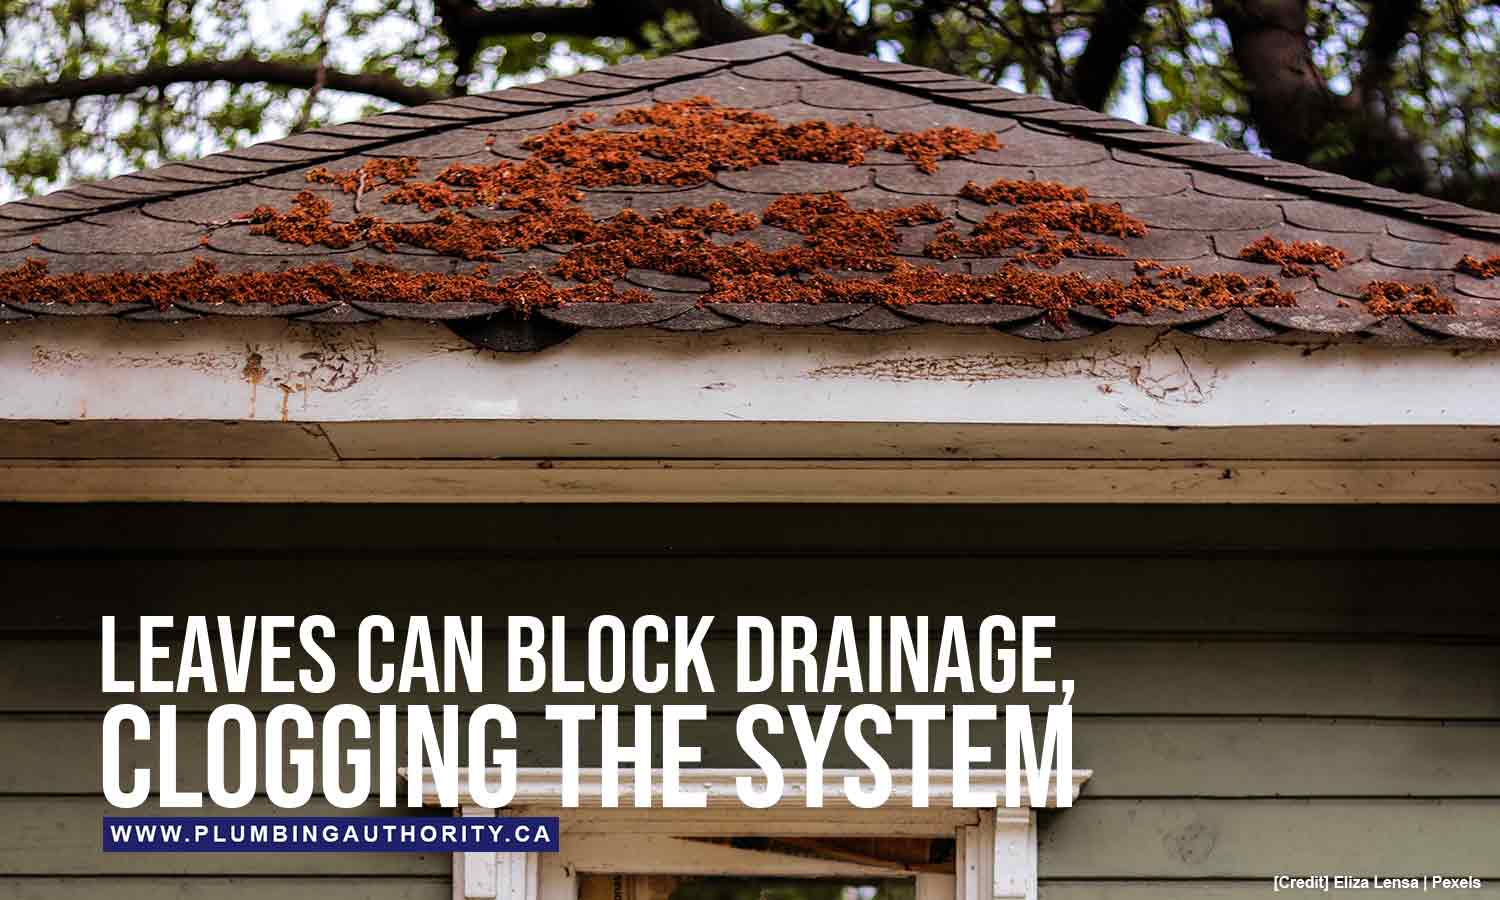 Leaves can block drainage